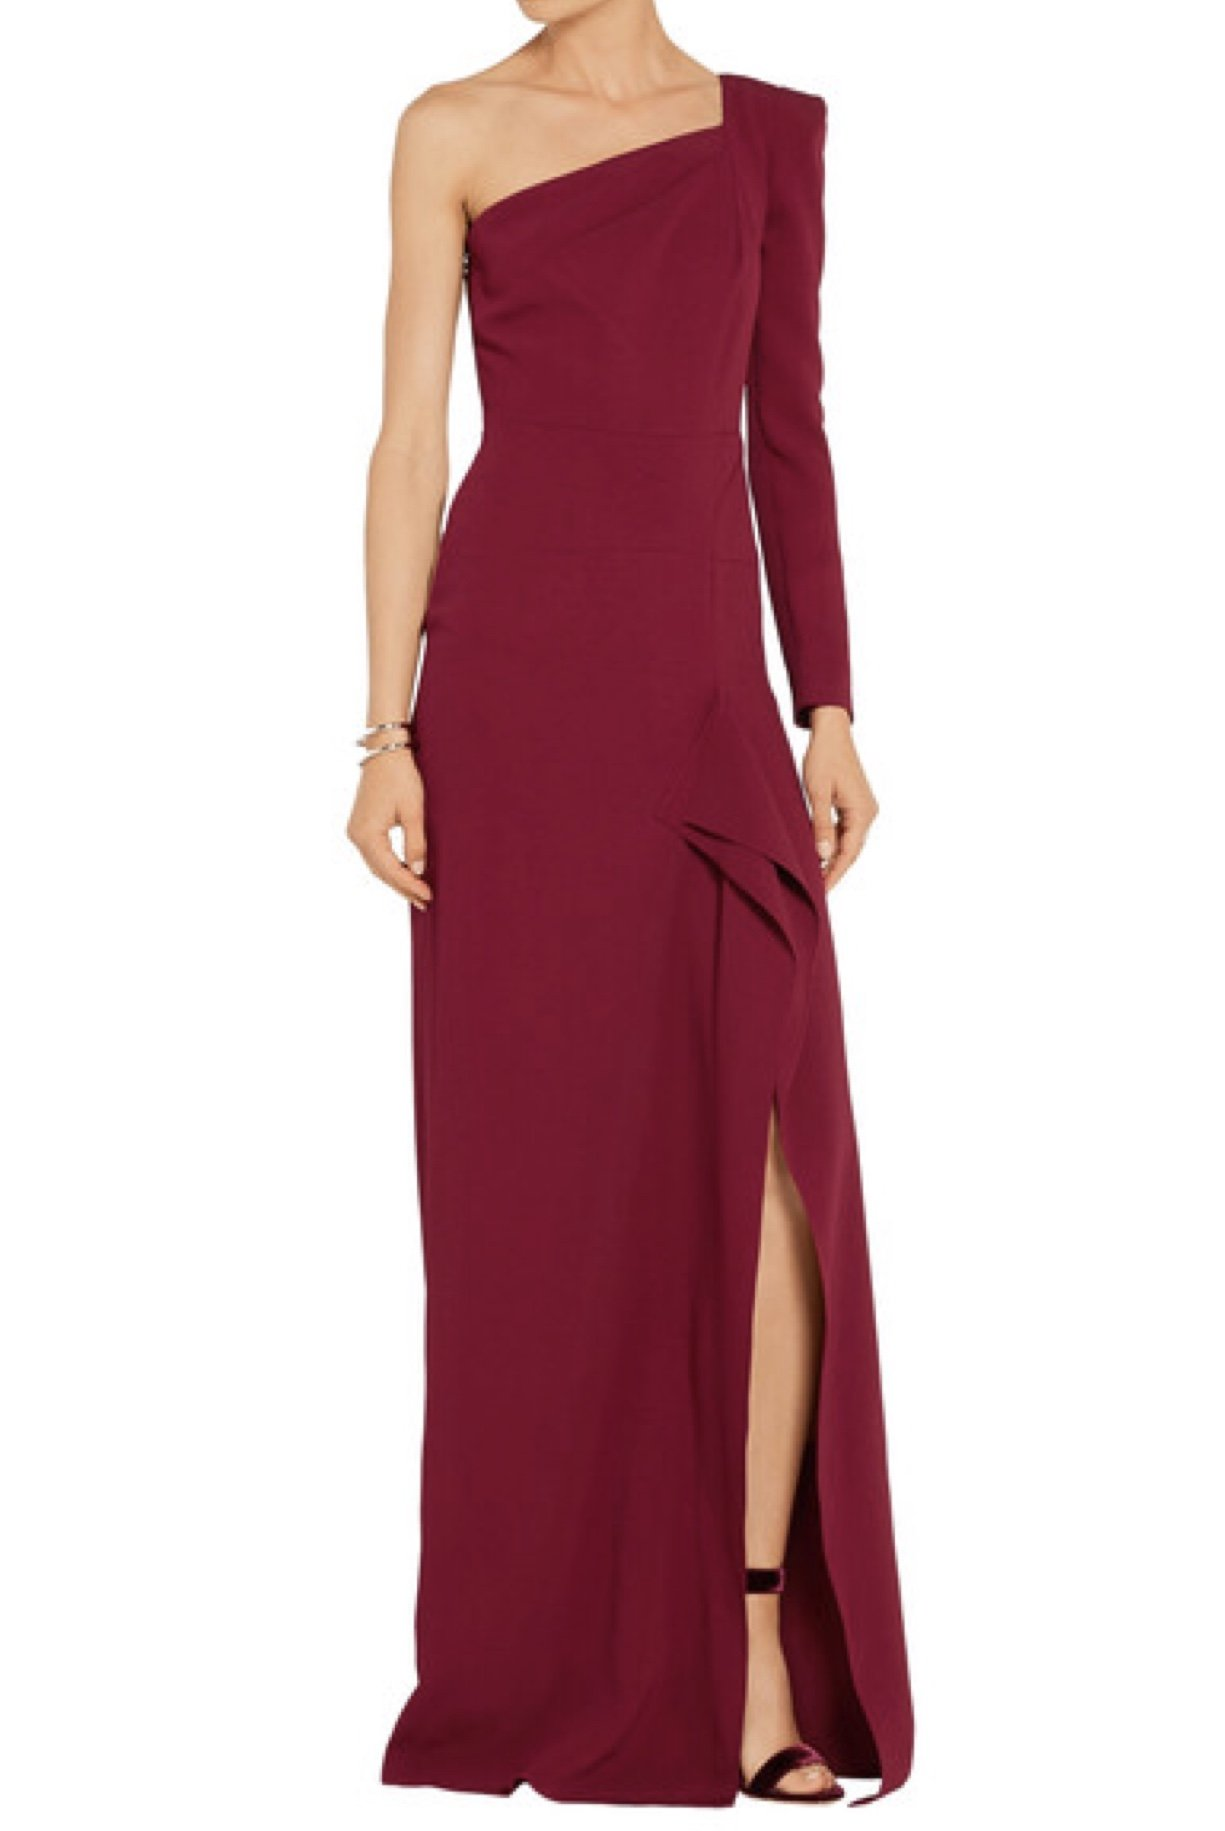 Roland Mouret Burgundy Red One Shoulder Galaham Gown